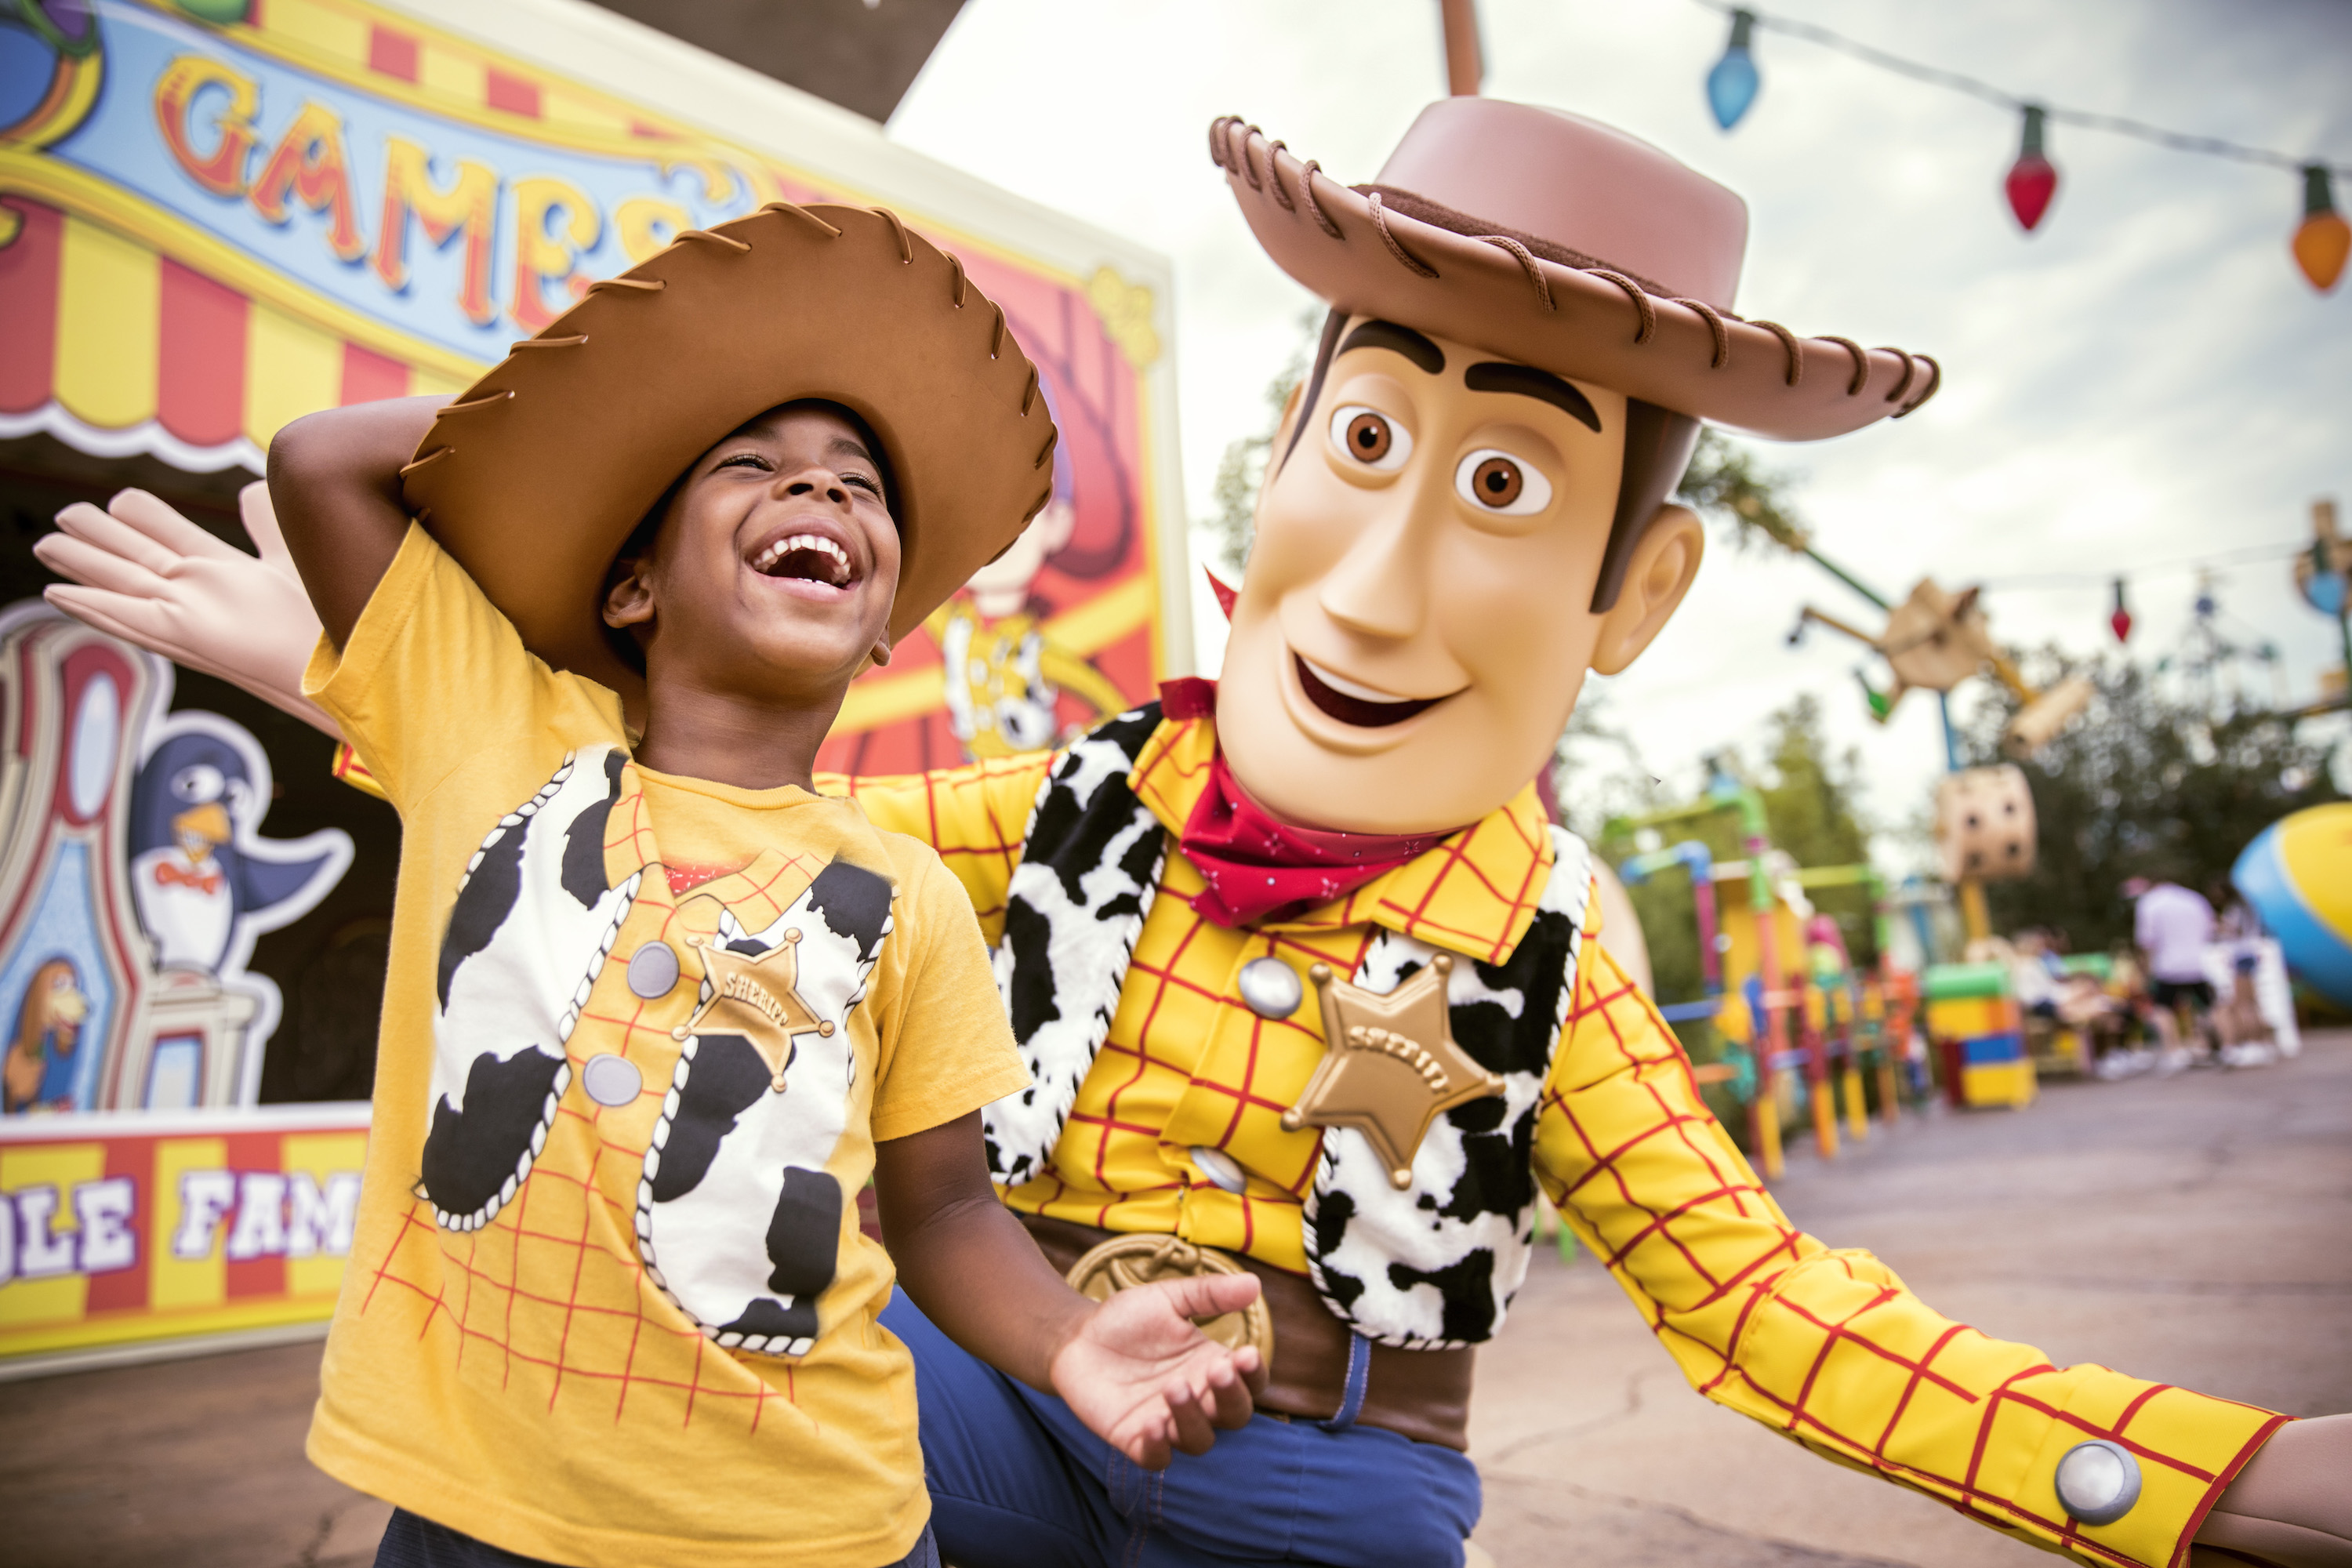 Play Big at Toy Story Land Before the Park Opens With Disney Early Morning Magic